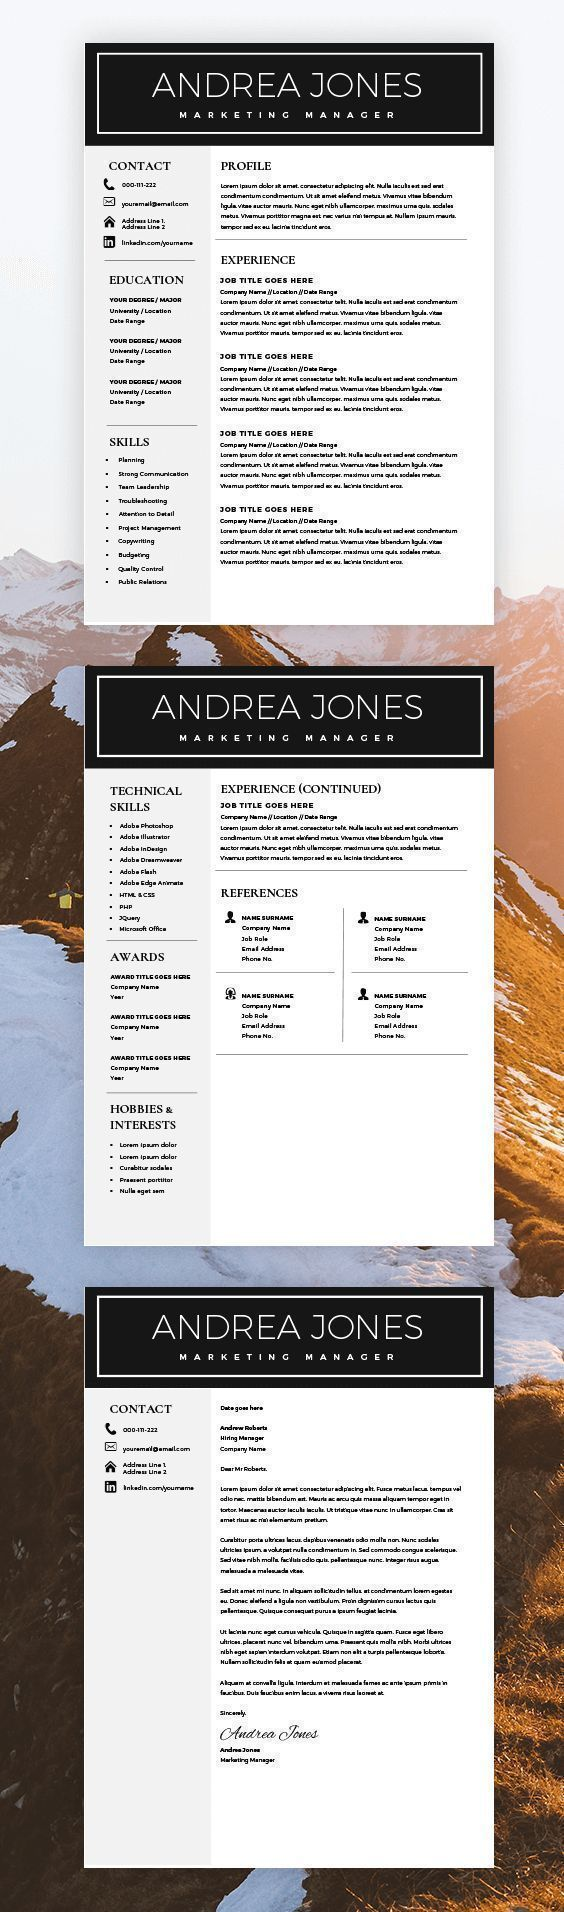 Word Cv Templates 2007%0A Minimal Resume Template   page  Multipurpose CV Template   Cover Letter  Resume  Template Word